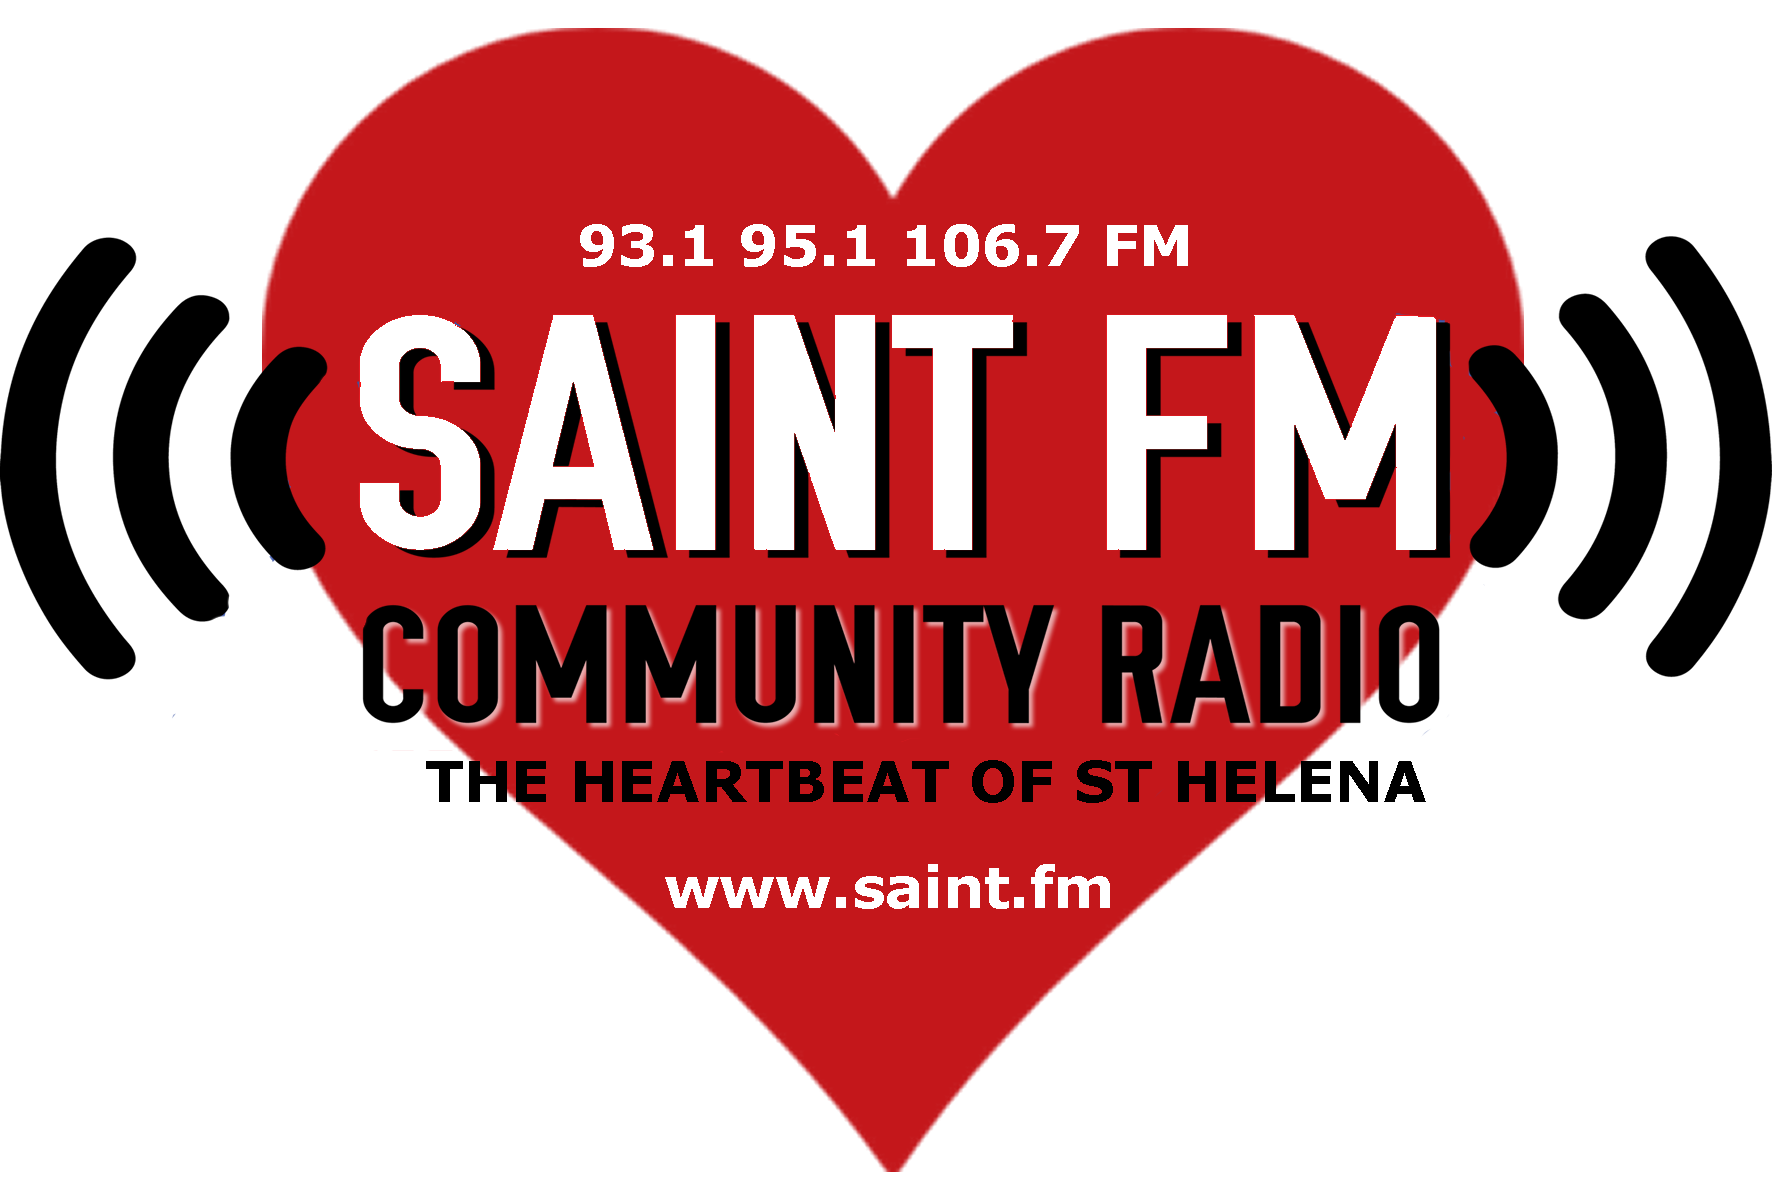 Click for: www.saint.fm • opens in a new window or tab [Burgh House:Related Sites]